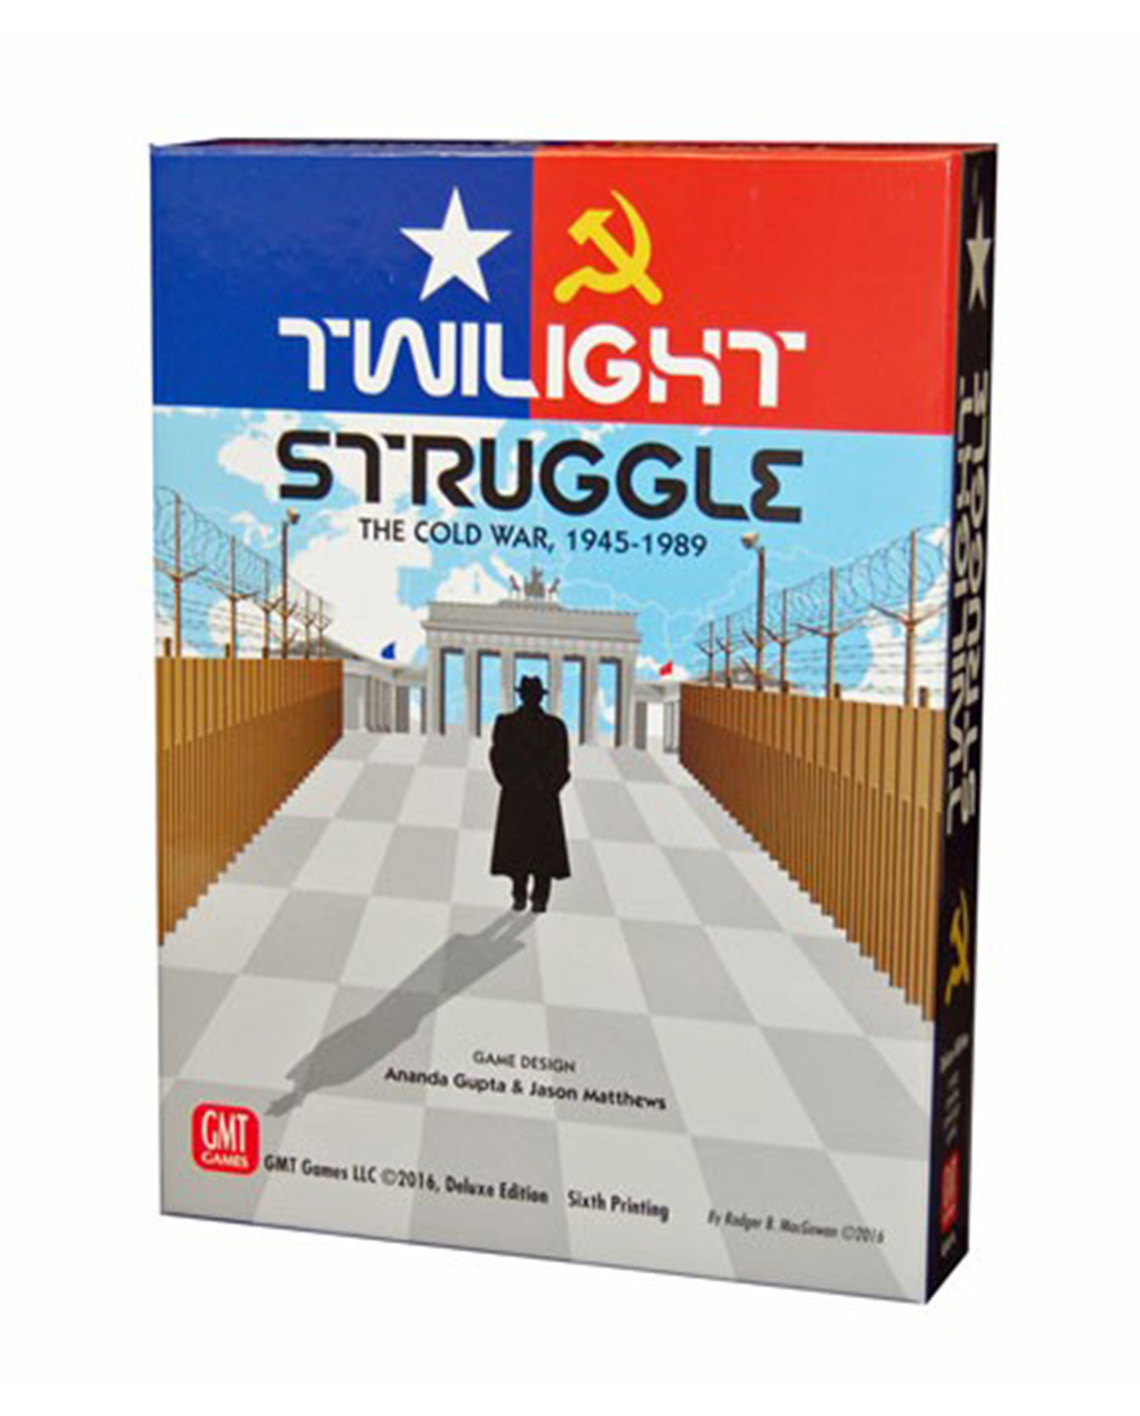 Productfoto van Twilight Struggle